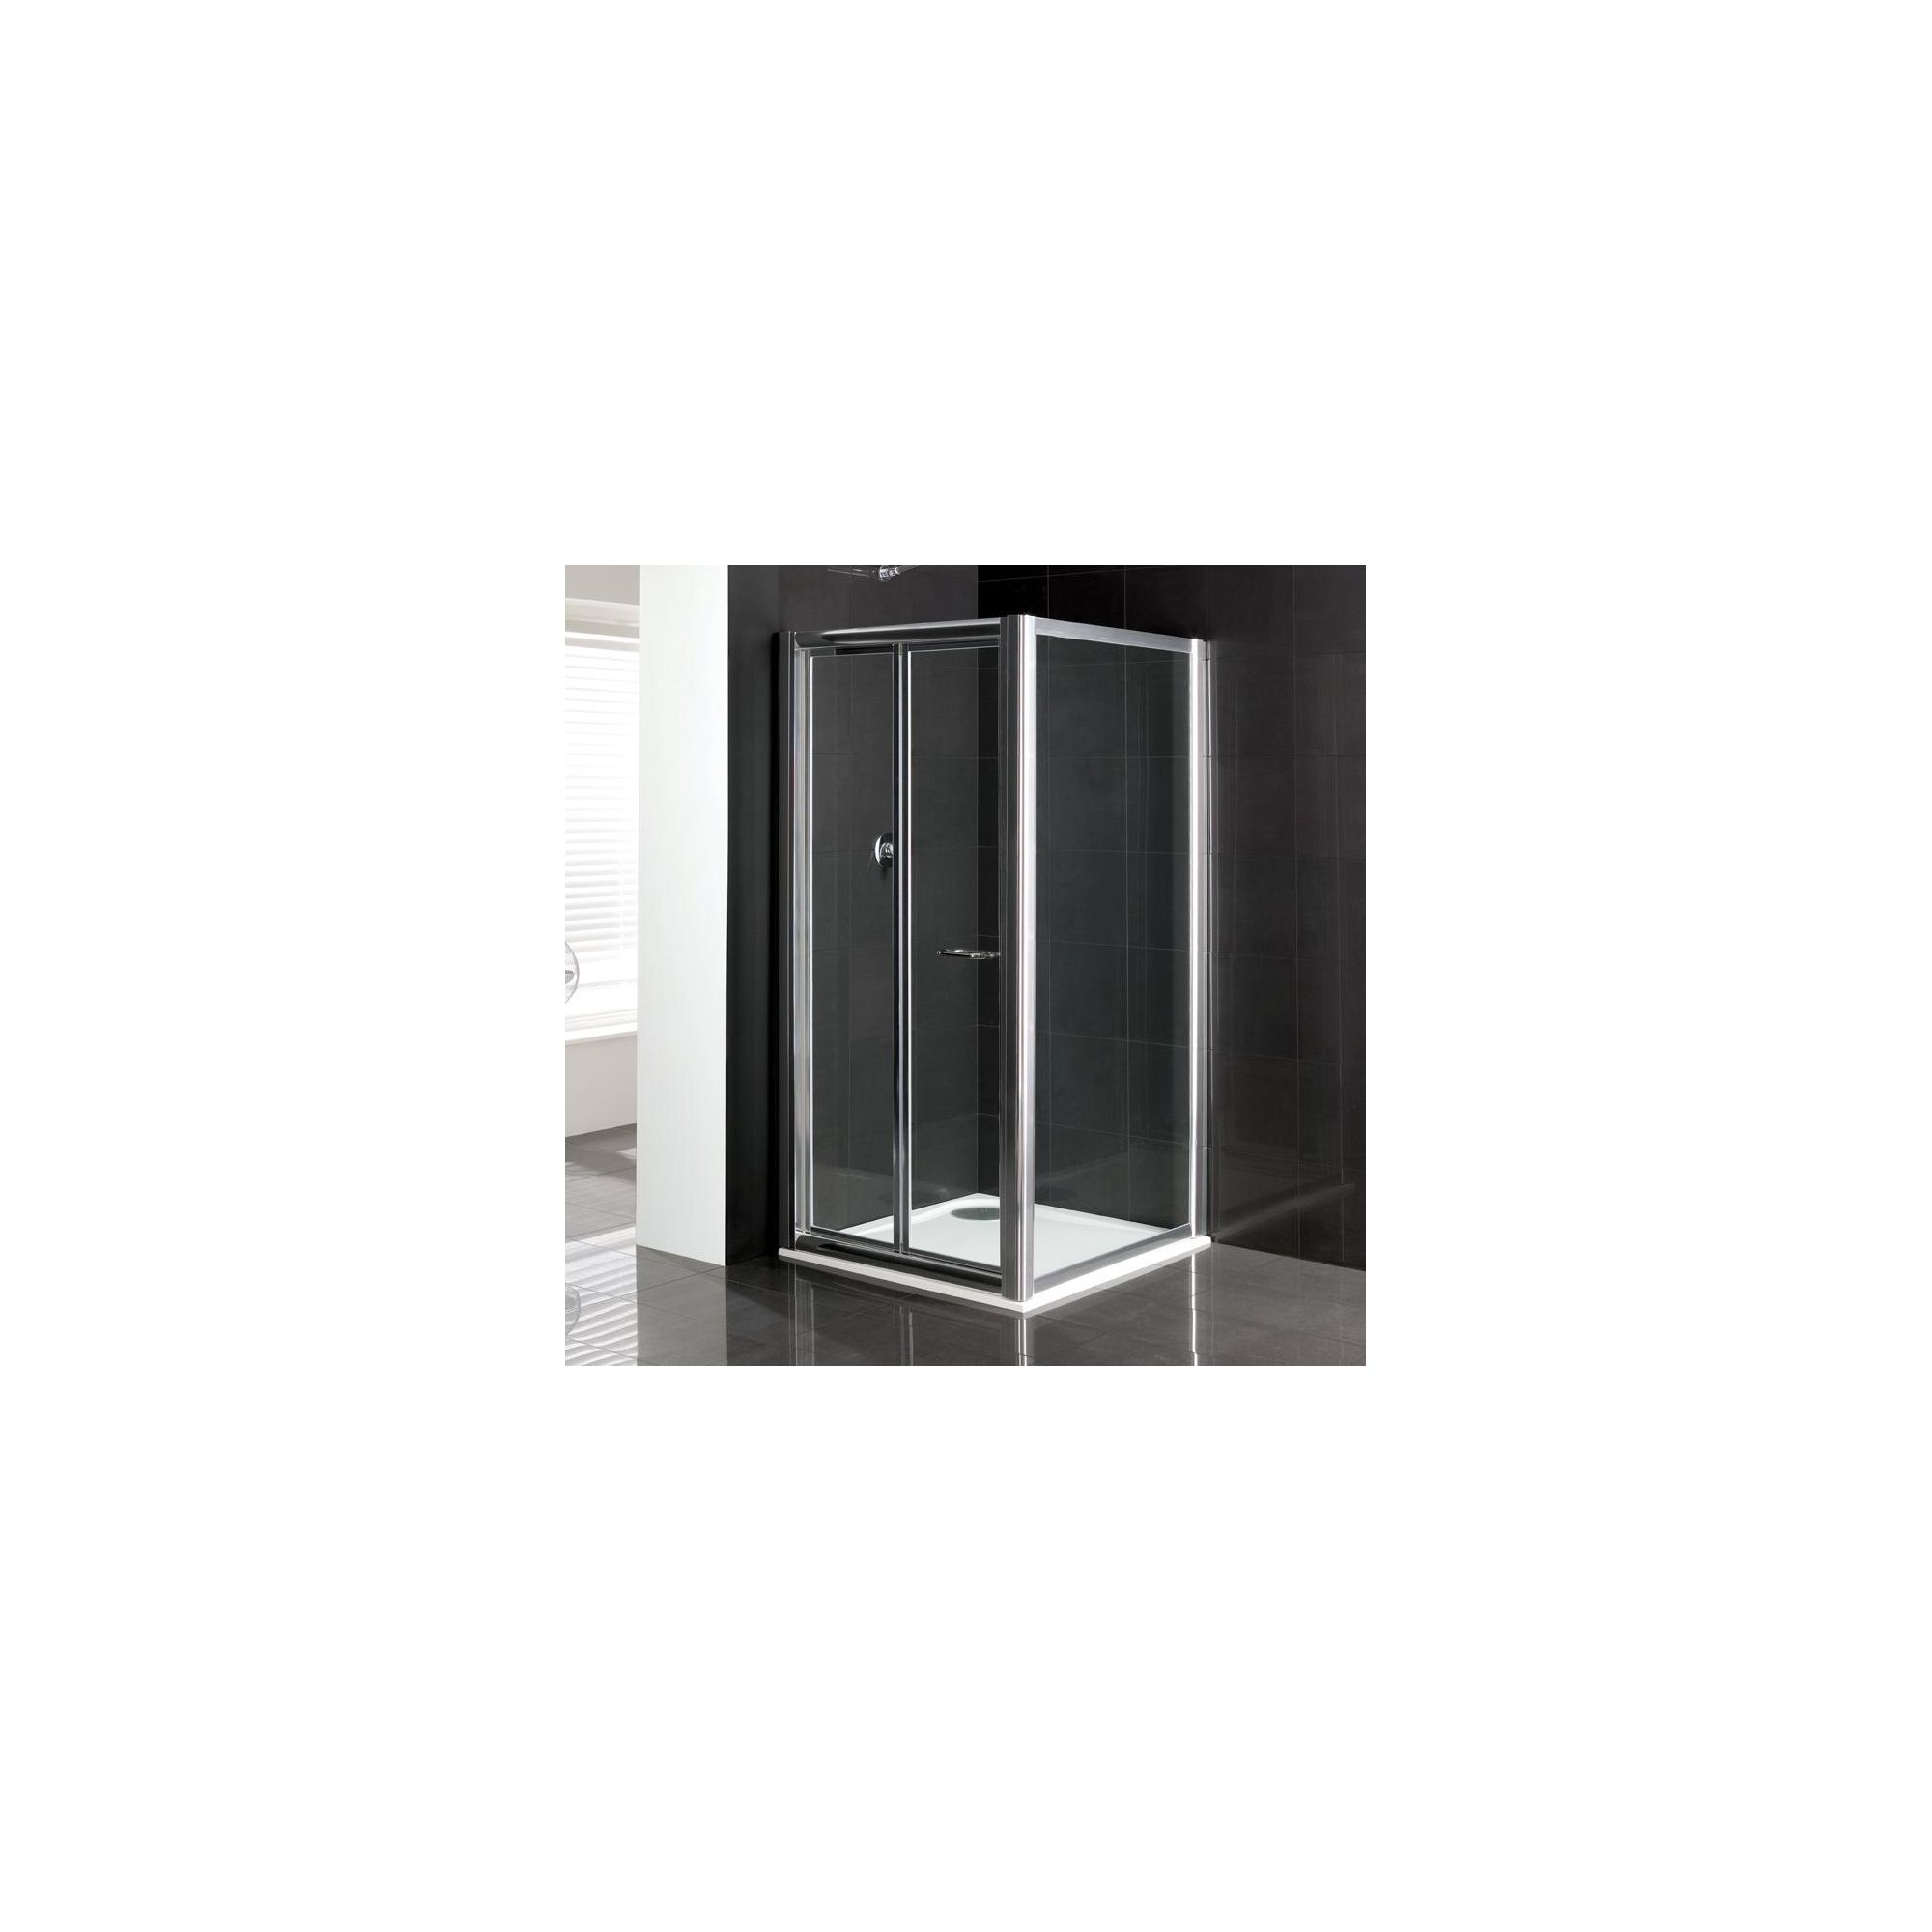 Duchy Elite Silver Bi-Fold Door Shower Enclosure, 900mm x 760mm, Standard Tray, 6mm Glass at Tesco Direct